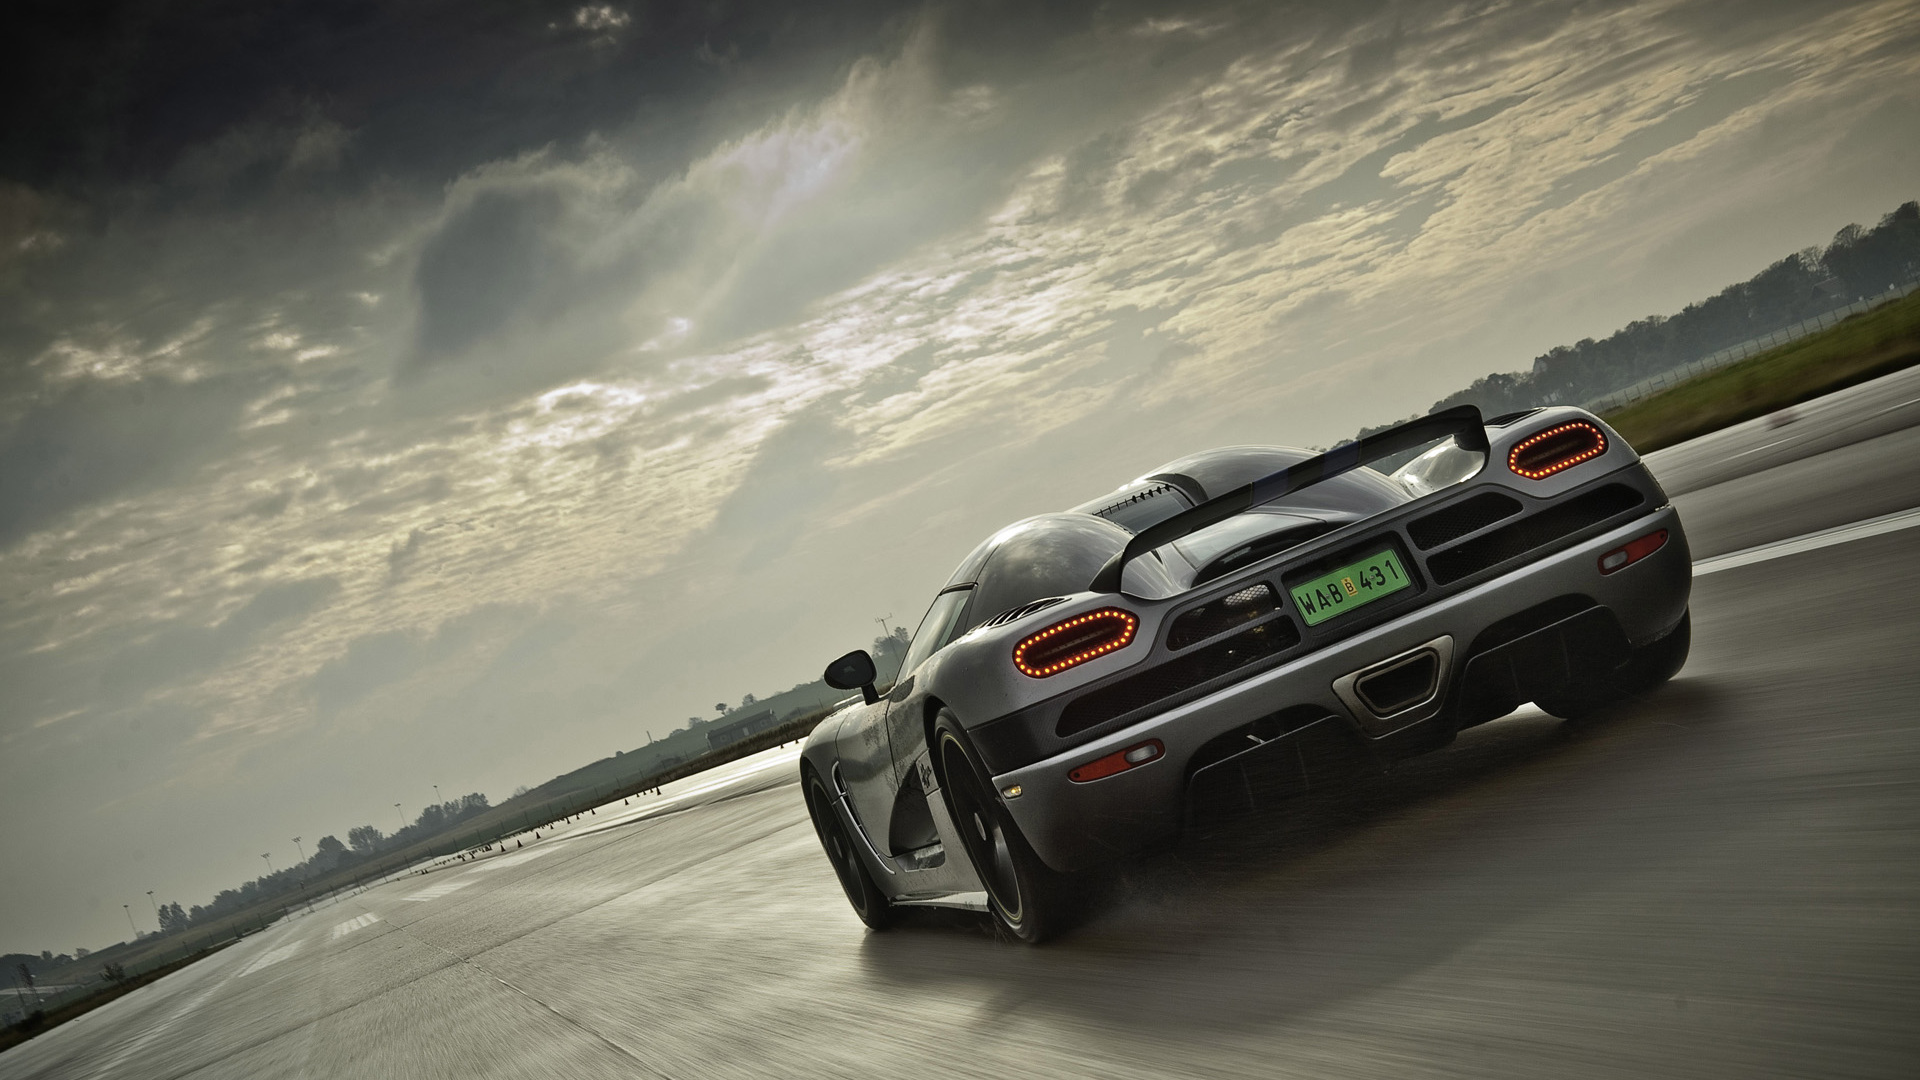 koenigsegg agera car wallpaper 1920x1080 2530 1920x1080